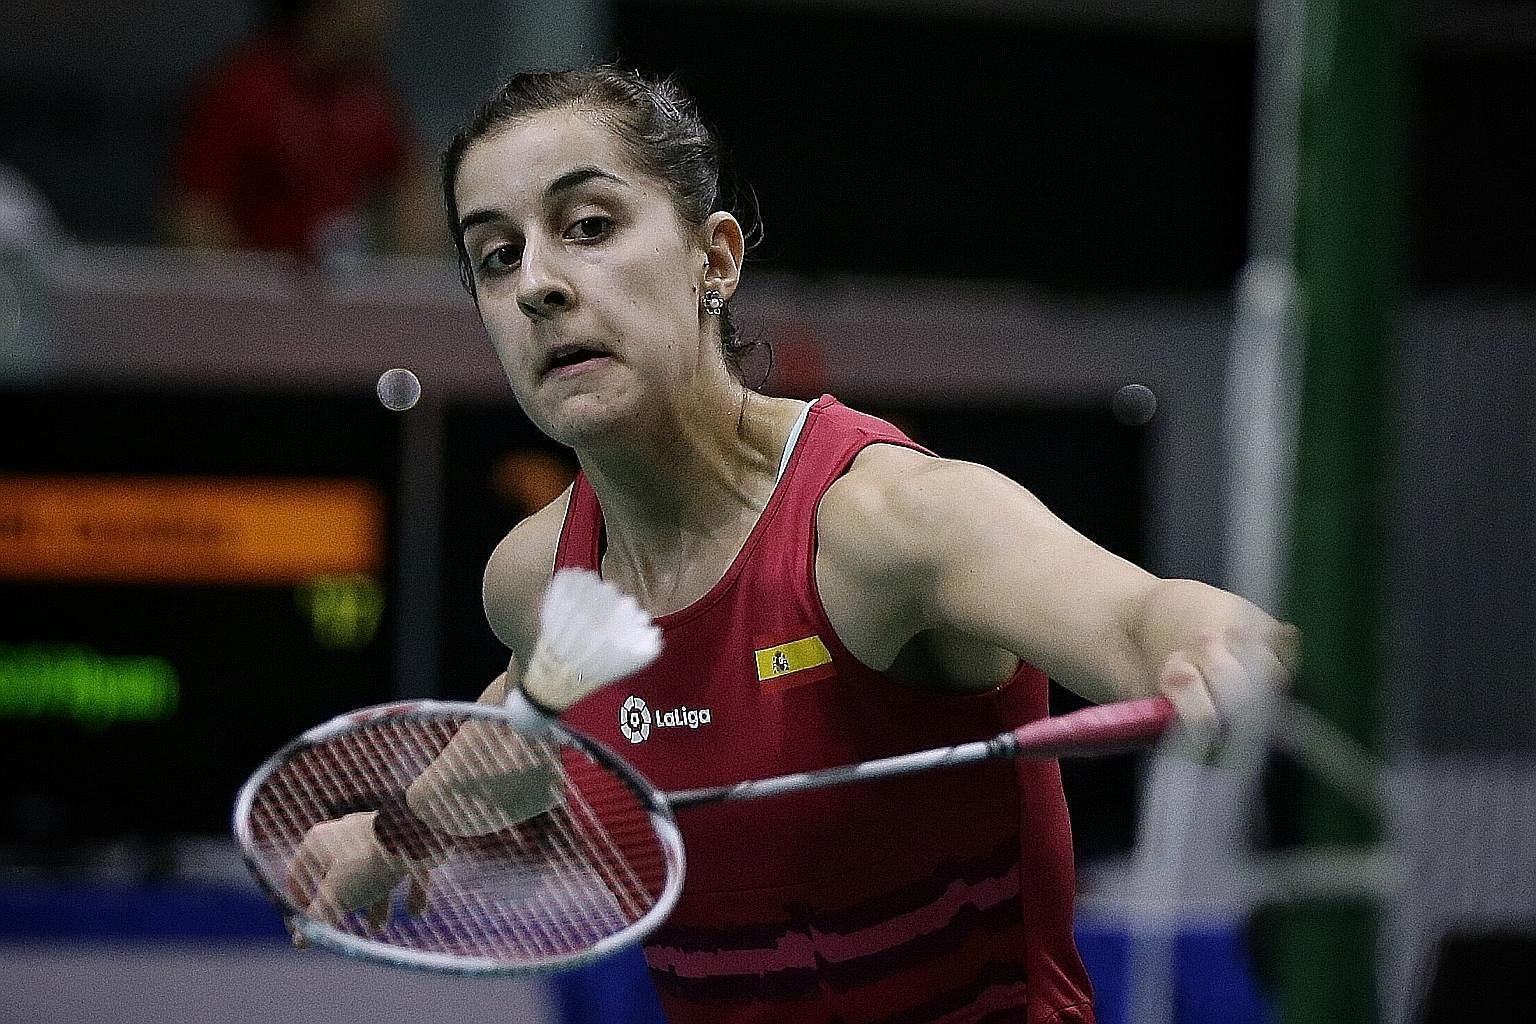 Reigning Olympic champion Carolina Marin will be gunning for her first title since the Rio Games. In the last fortnight she has lost two finals, to Tai Tzu-ying in the Malaysia Open and P.V. Sindhu in the India Open.